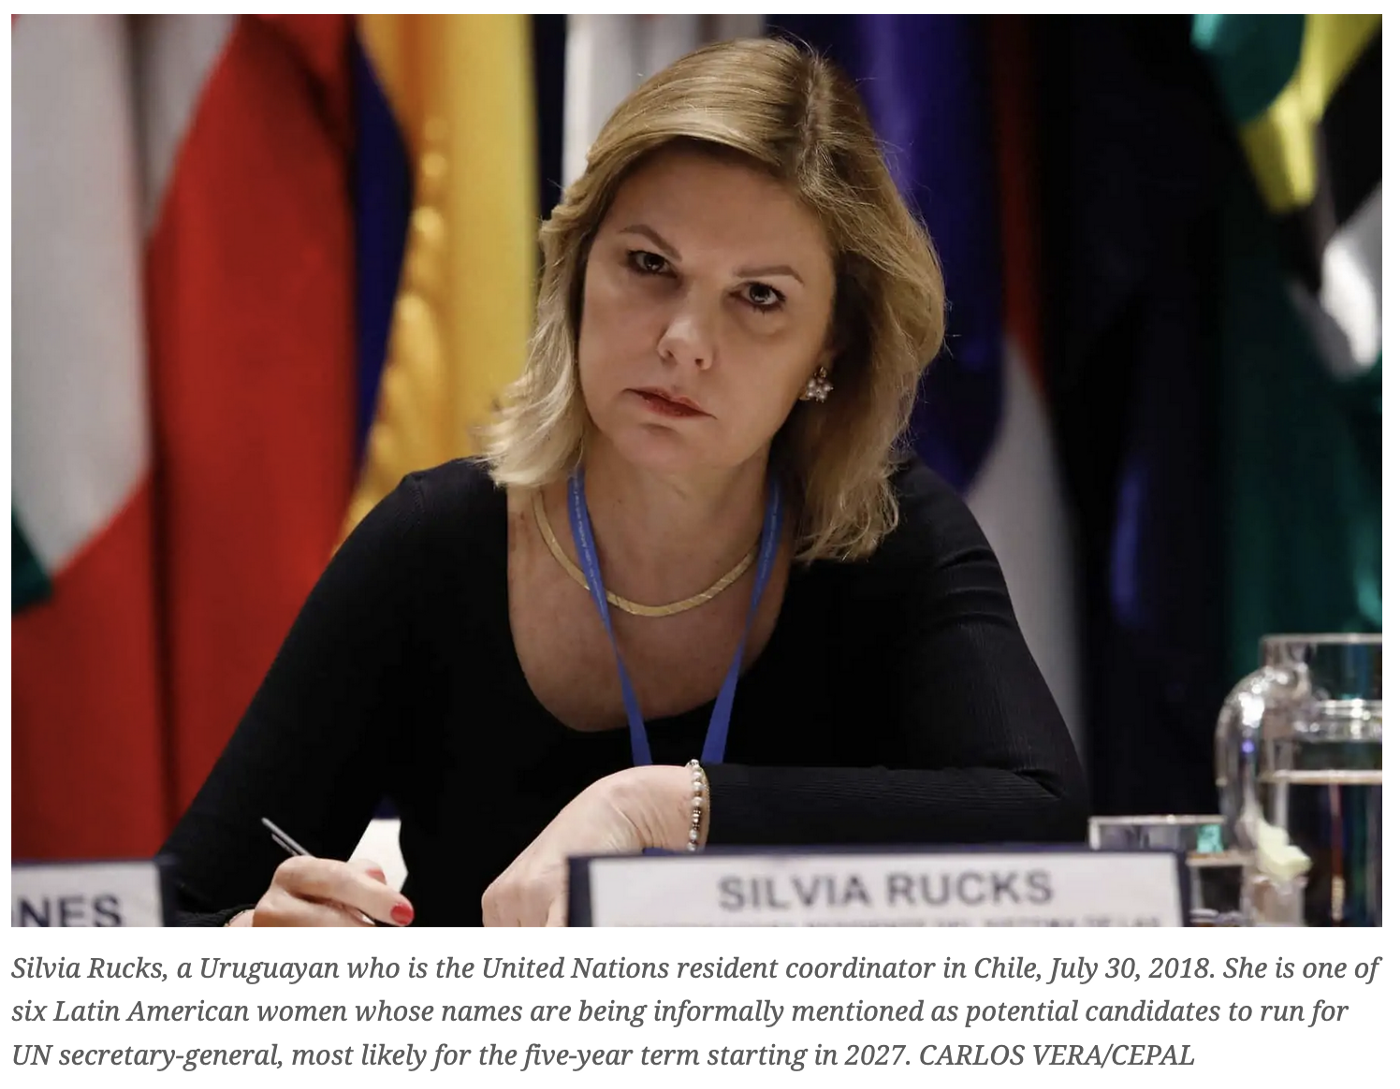 Silvia Rucks, a Uruguayan who is the United Nations resident coordinator in Chile, July 30, 2018.